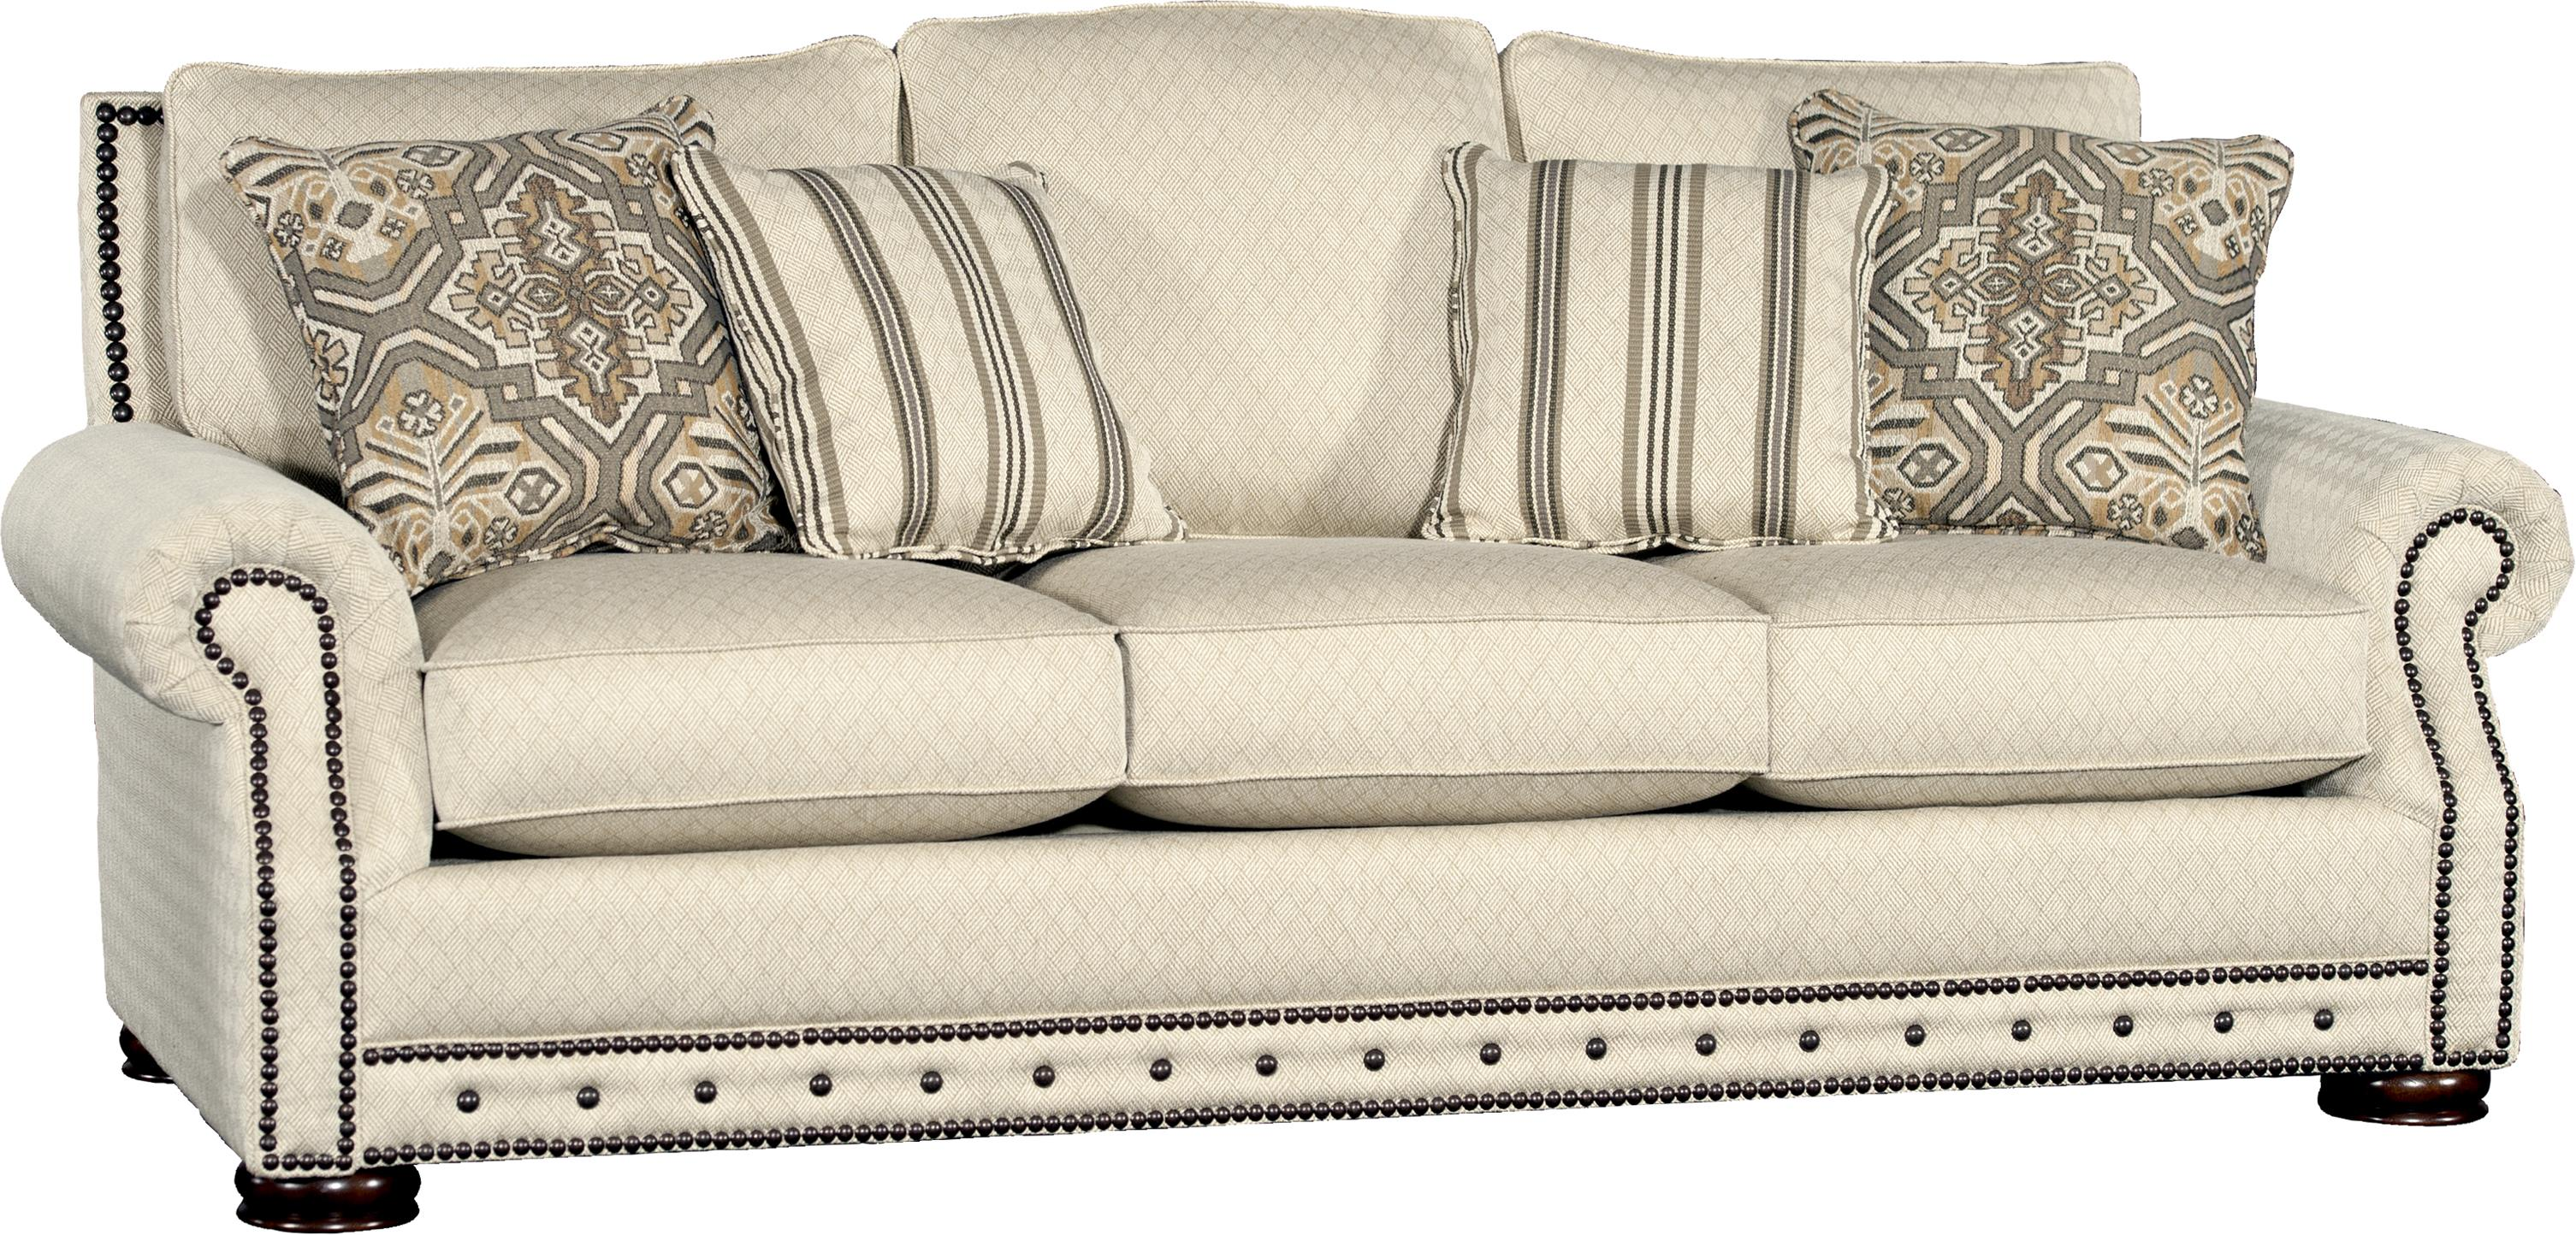 2900 Sofa by Mayo at Wilcox Furniture